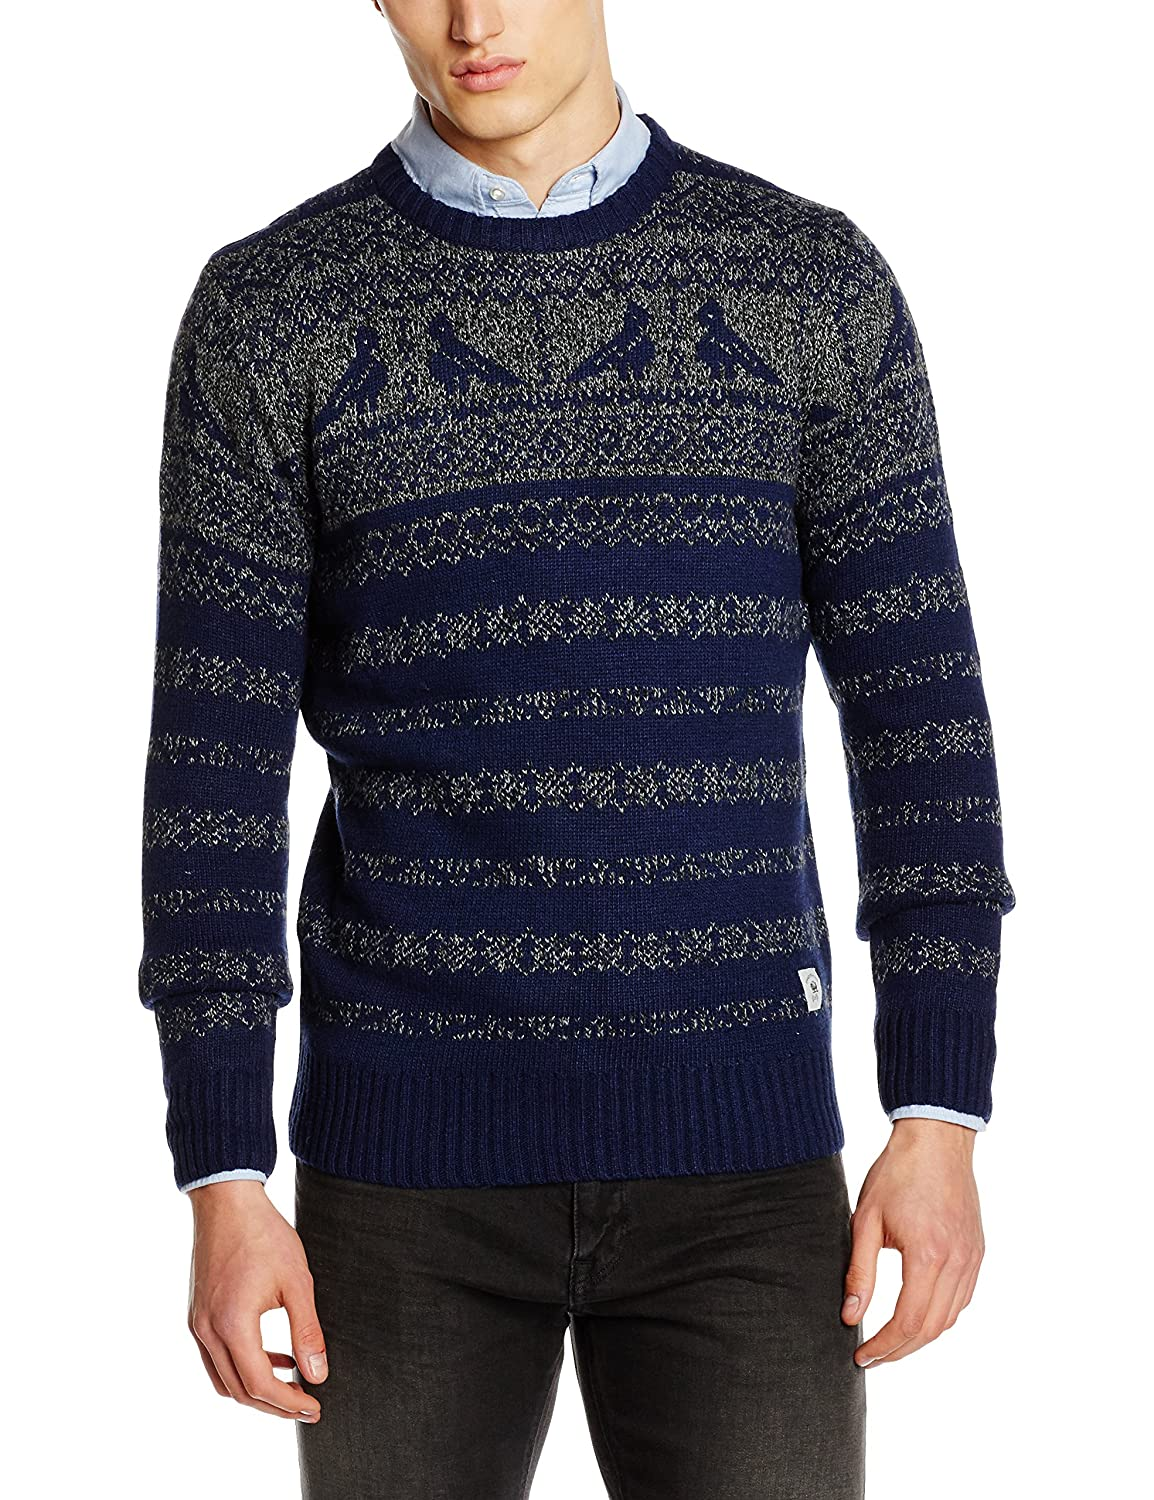 Bellfield Men's Joakim Sports Jumper